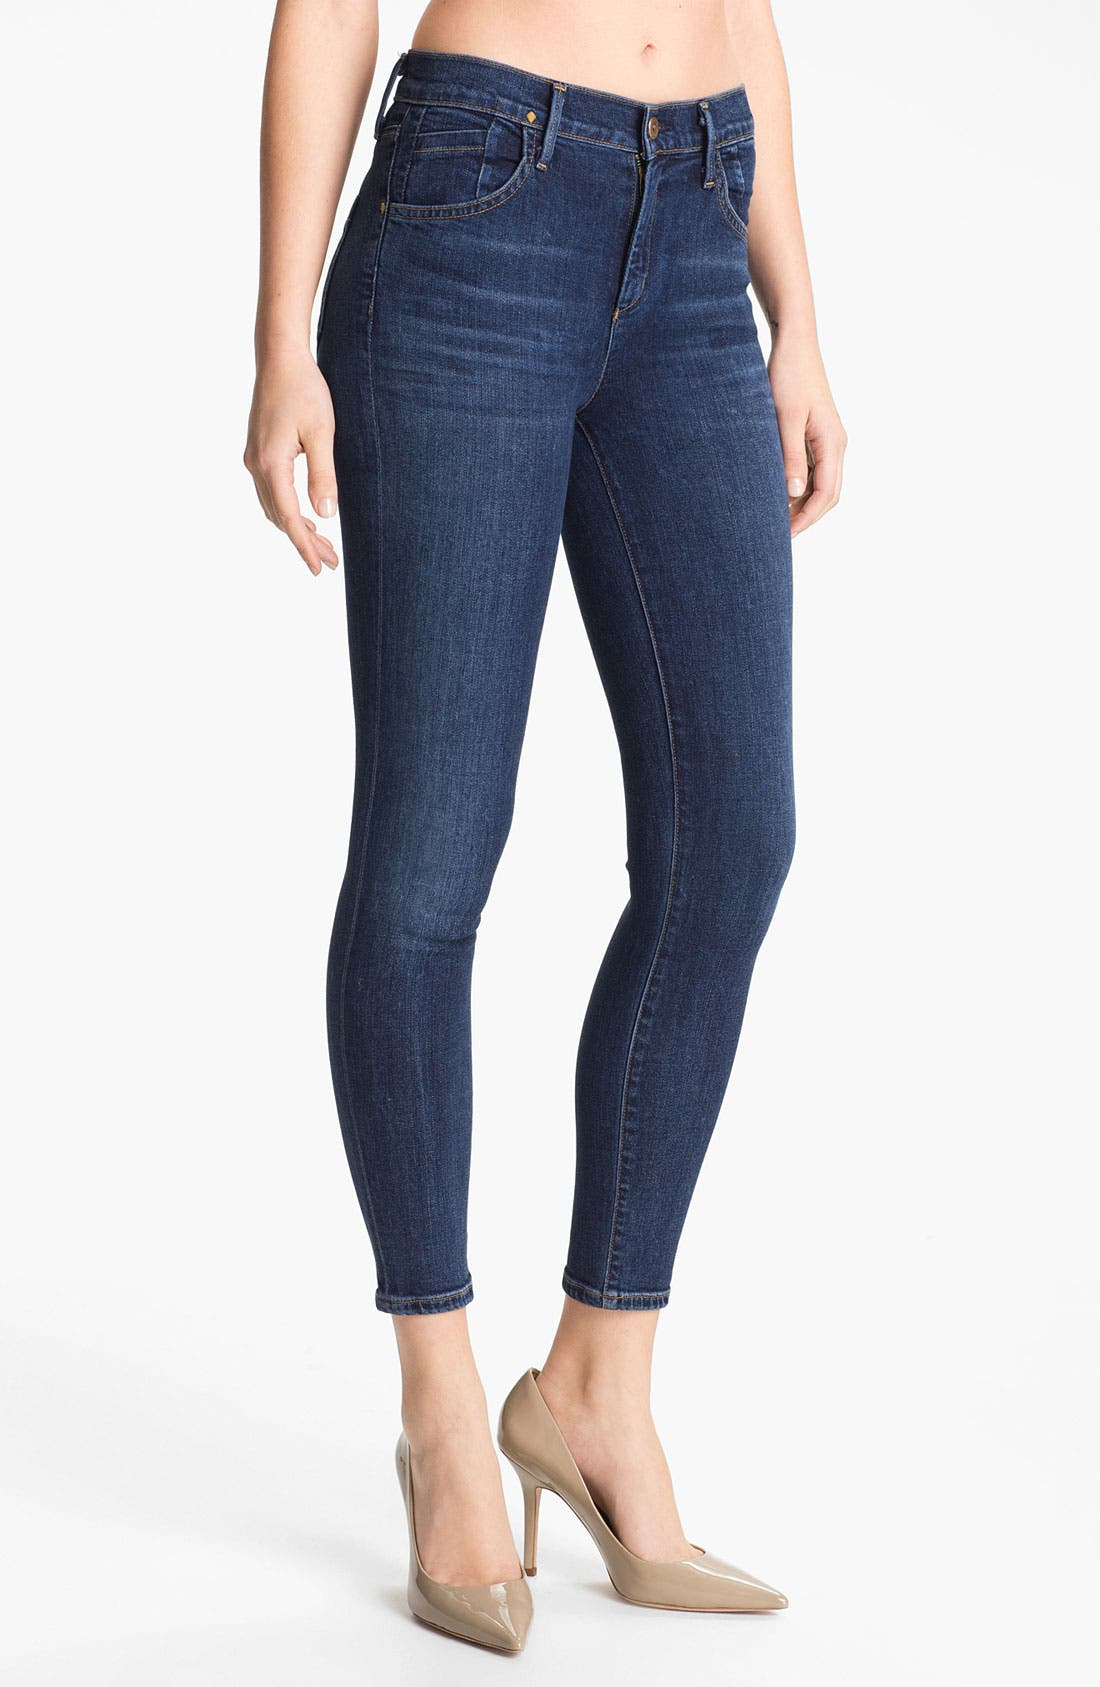 Alternate Image 1 Selected - Goldsign 'Virtual' Crop Skinny Stretch Jeans (Zagir)